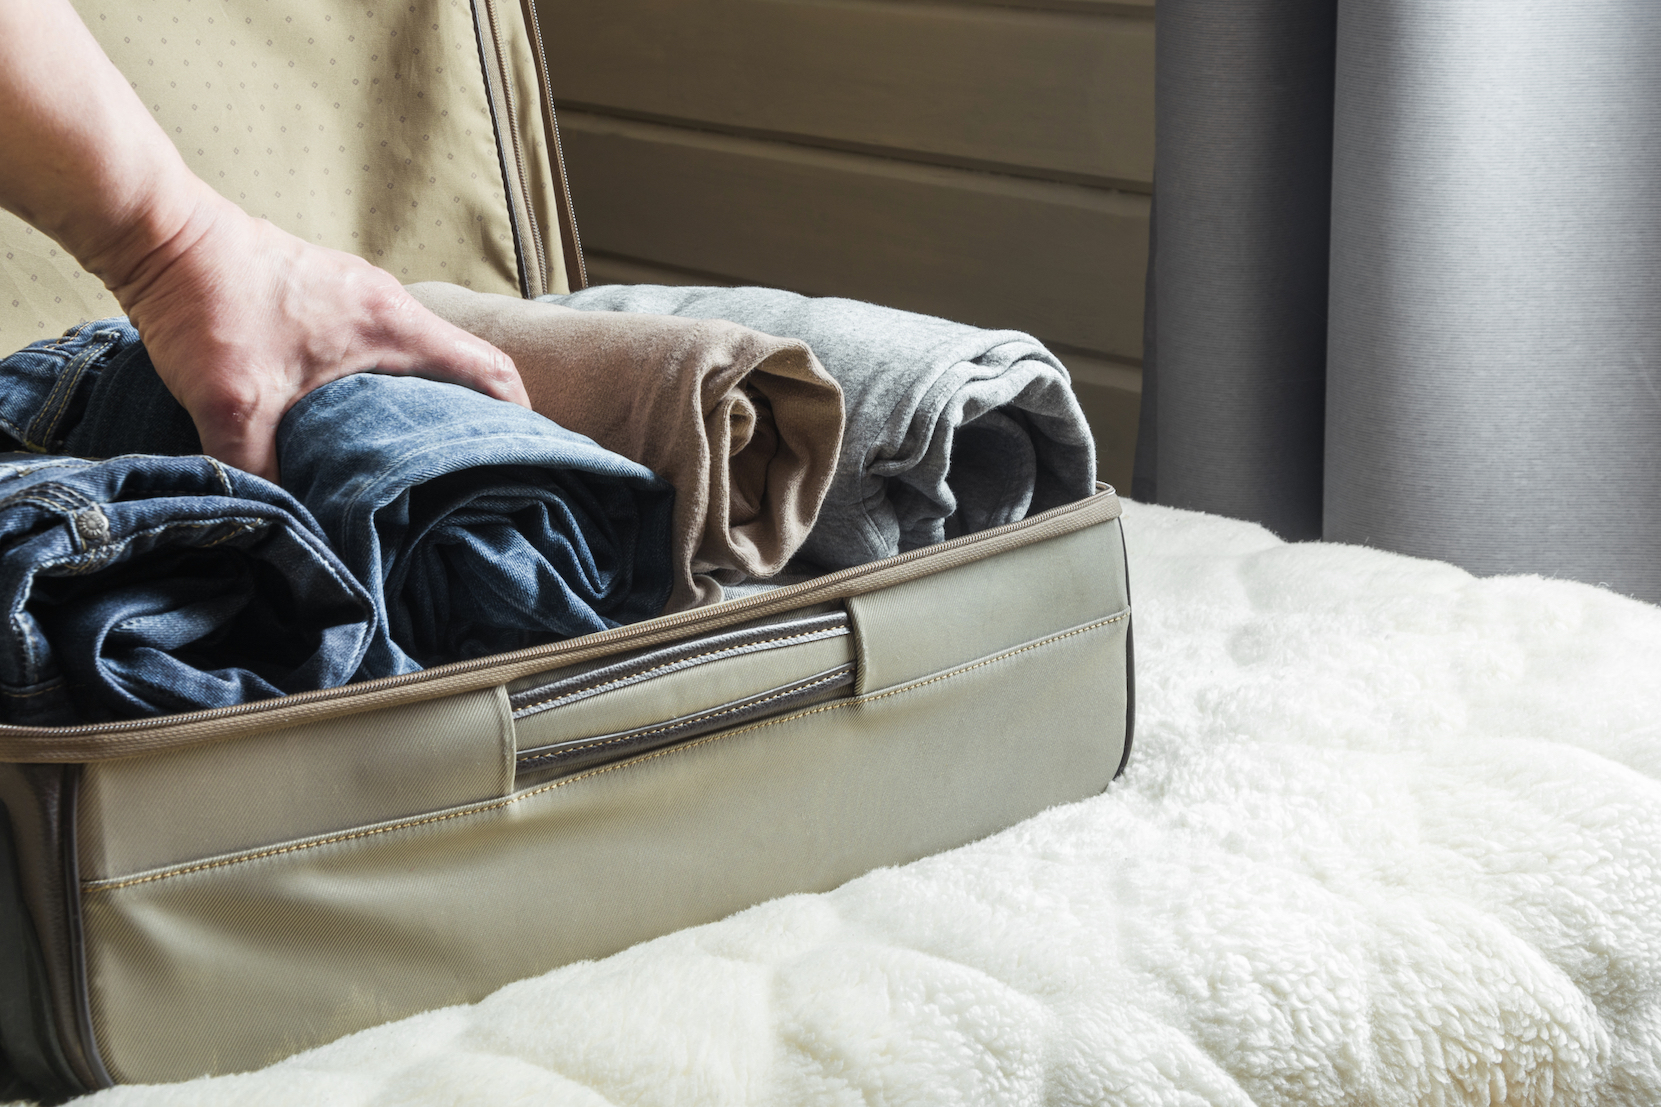 man-suitcase-how-to-pack-clothes-for-moving.jpg